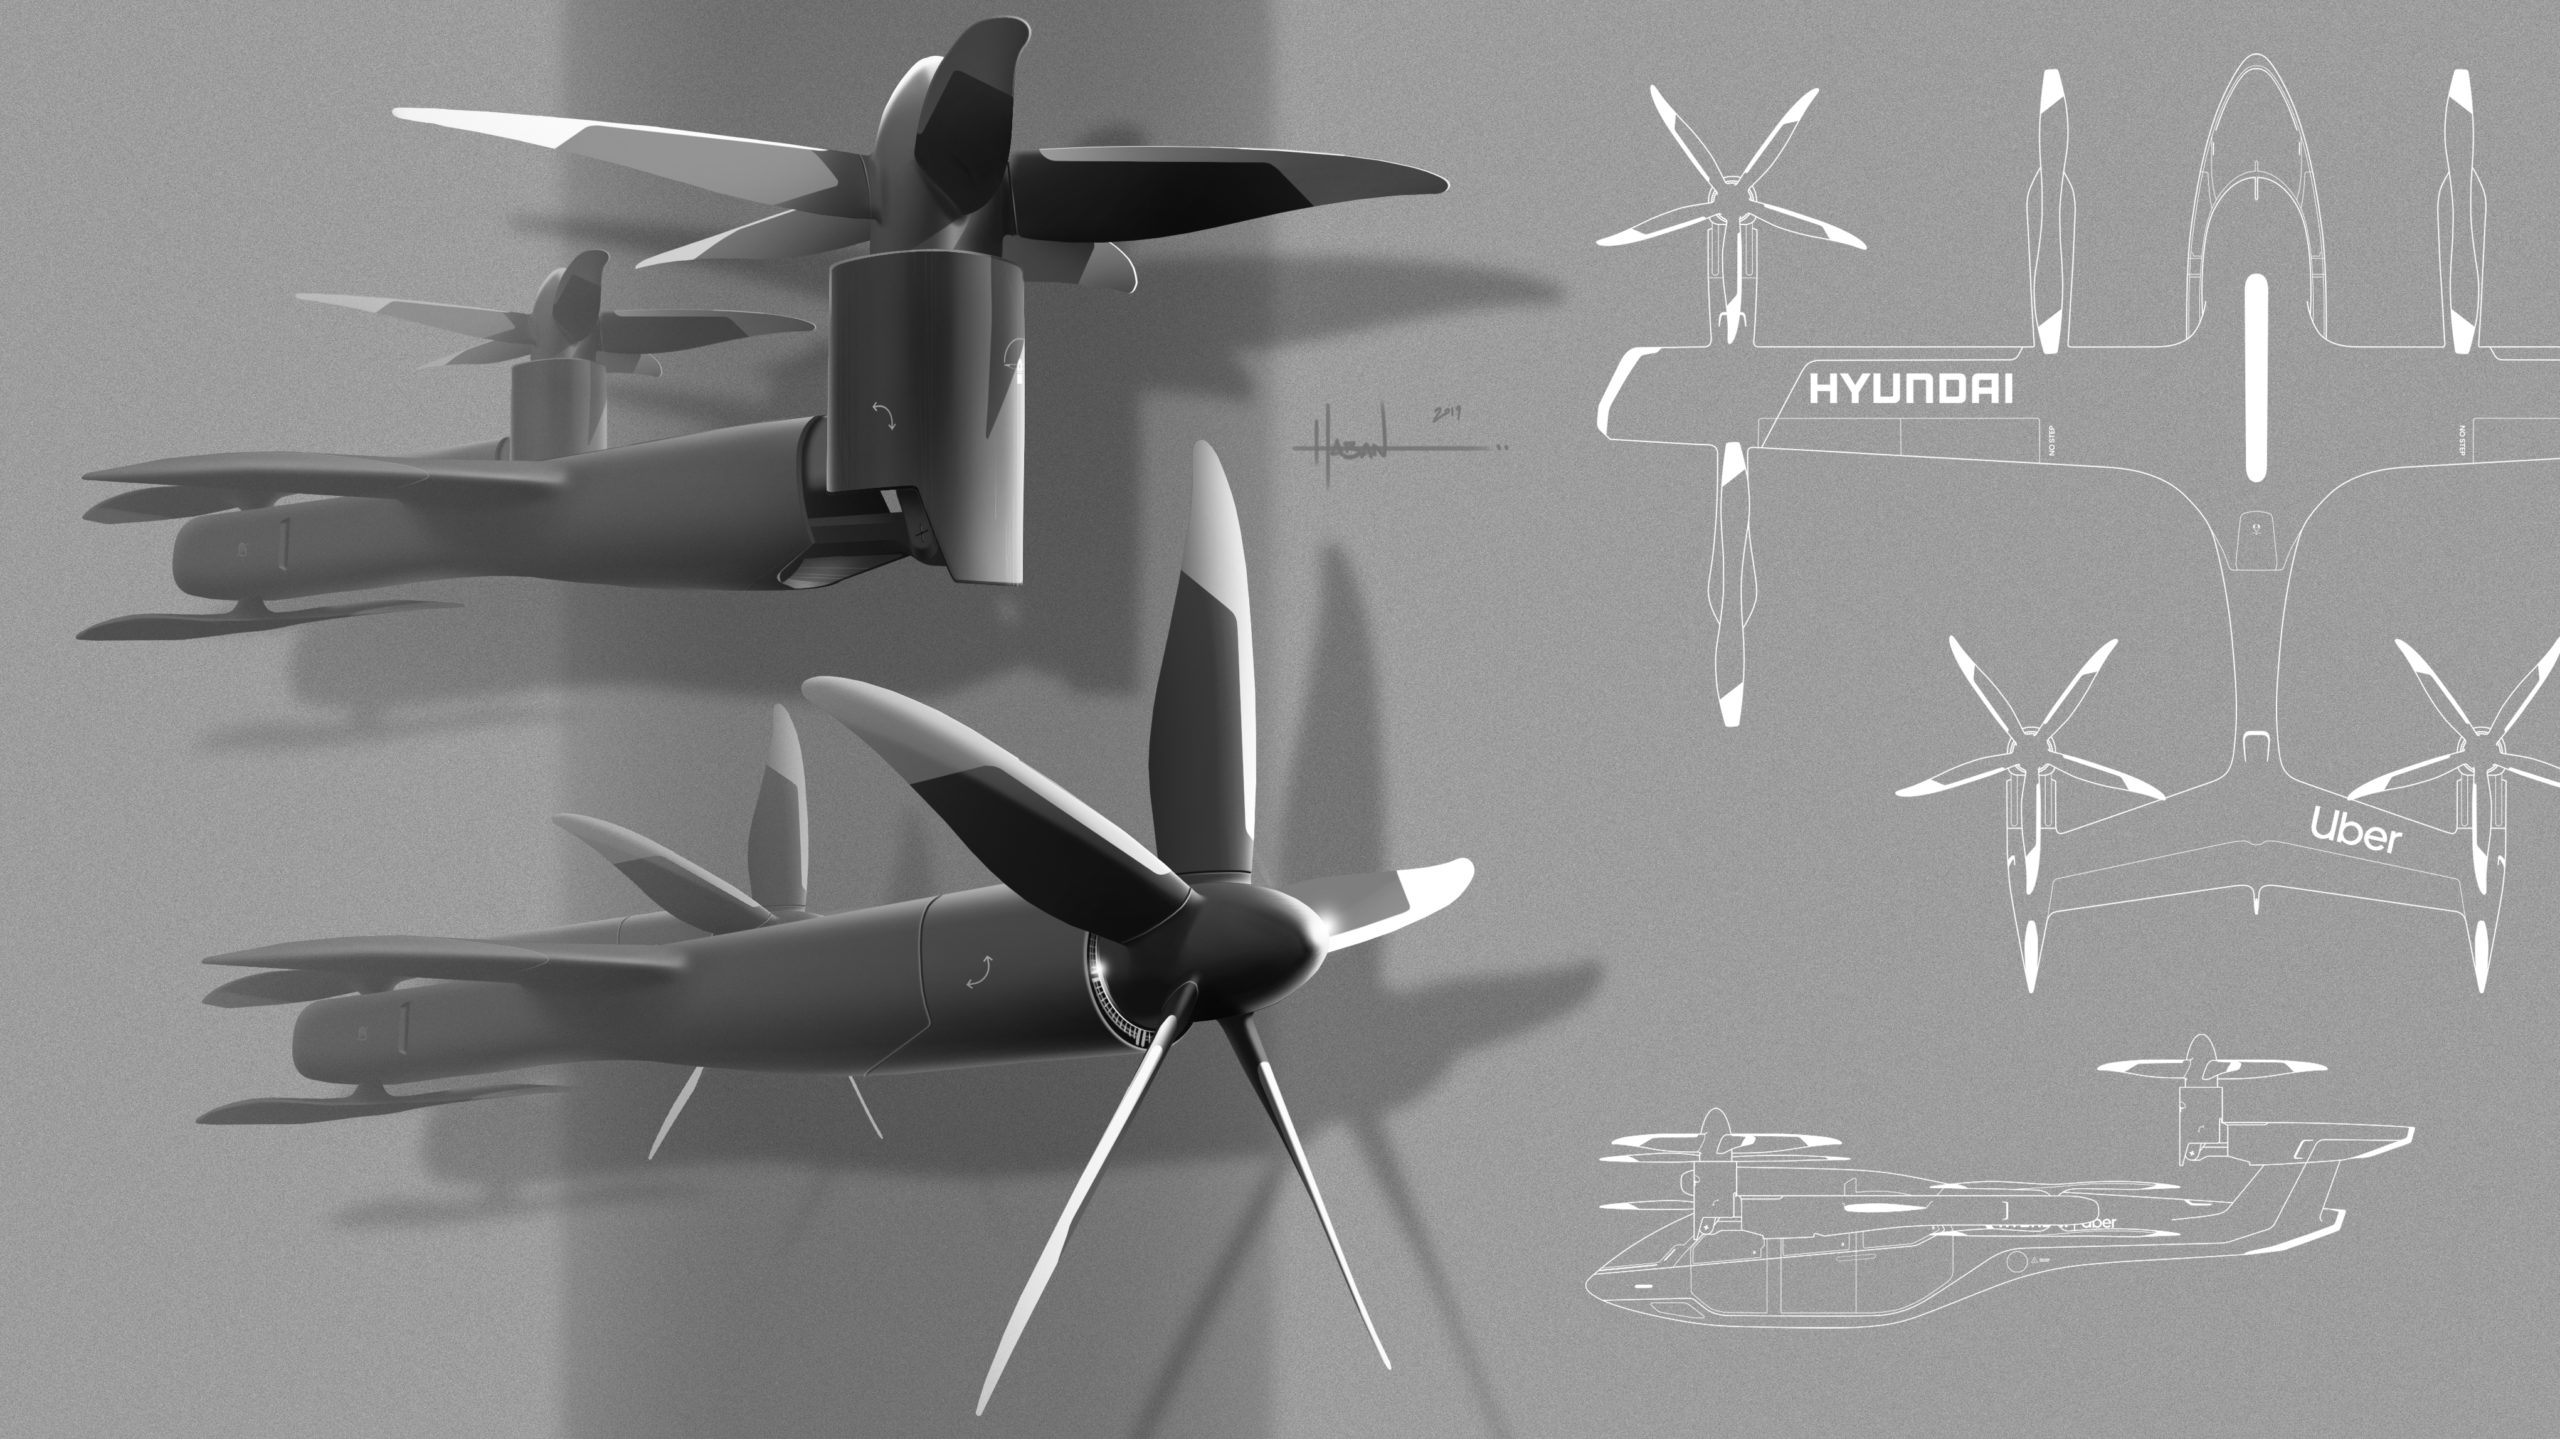 Uber and Hyundai Motor Announce Aerial Ridesharing Partnership, Release New Full-Scale Air Taxi Model at CES - Brand Spur